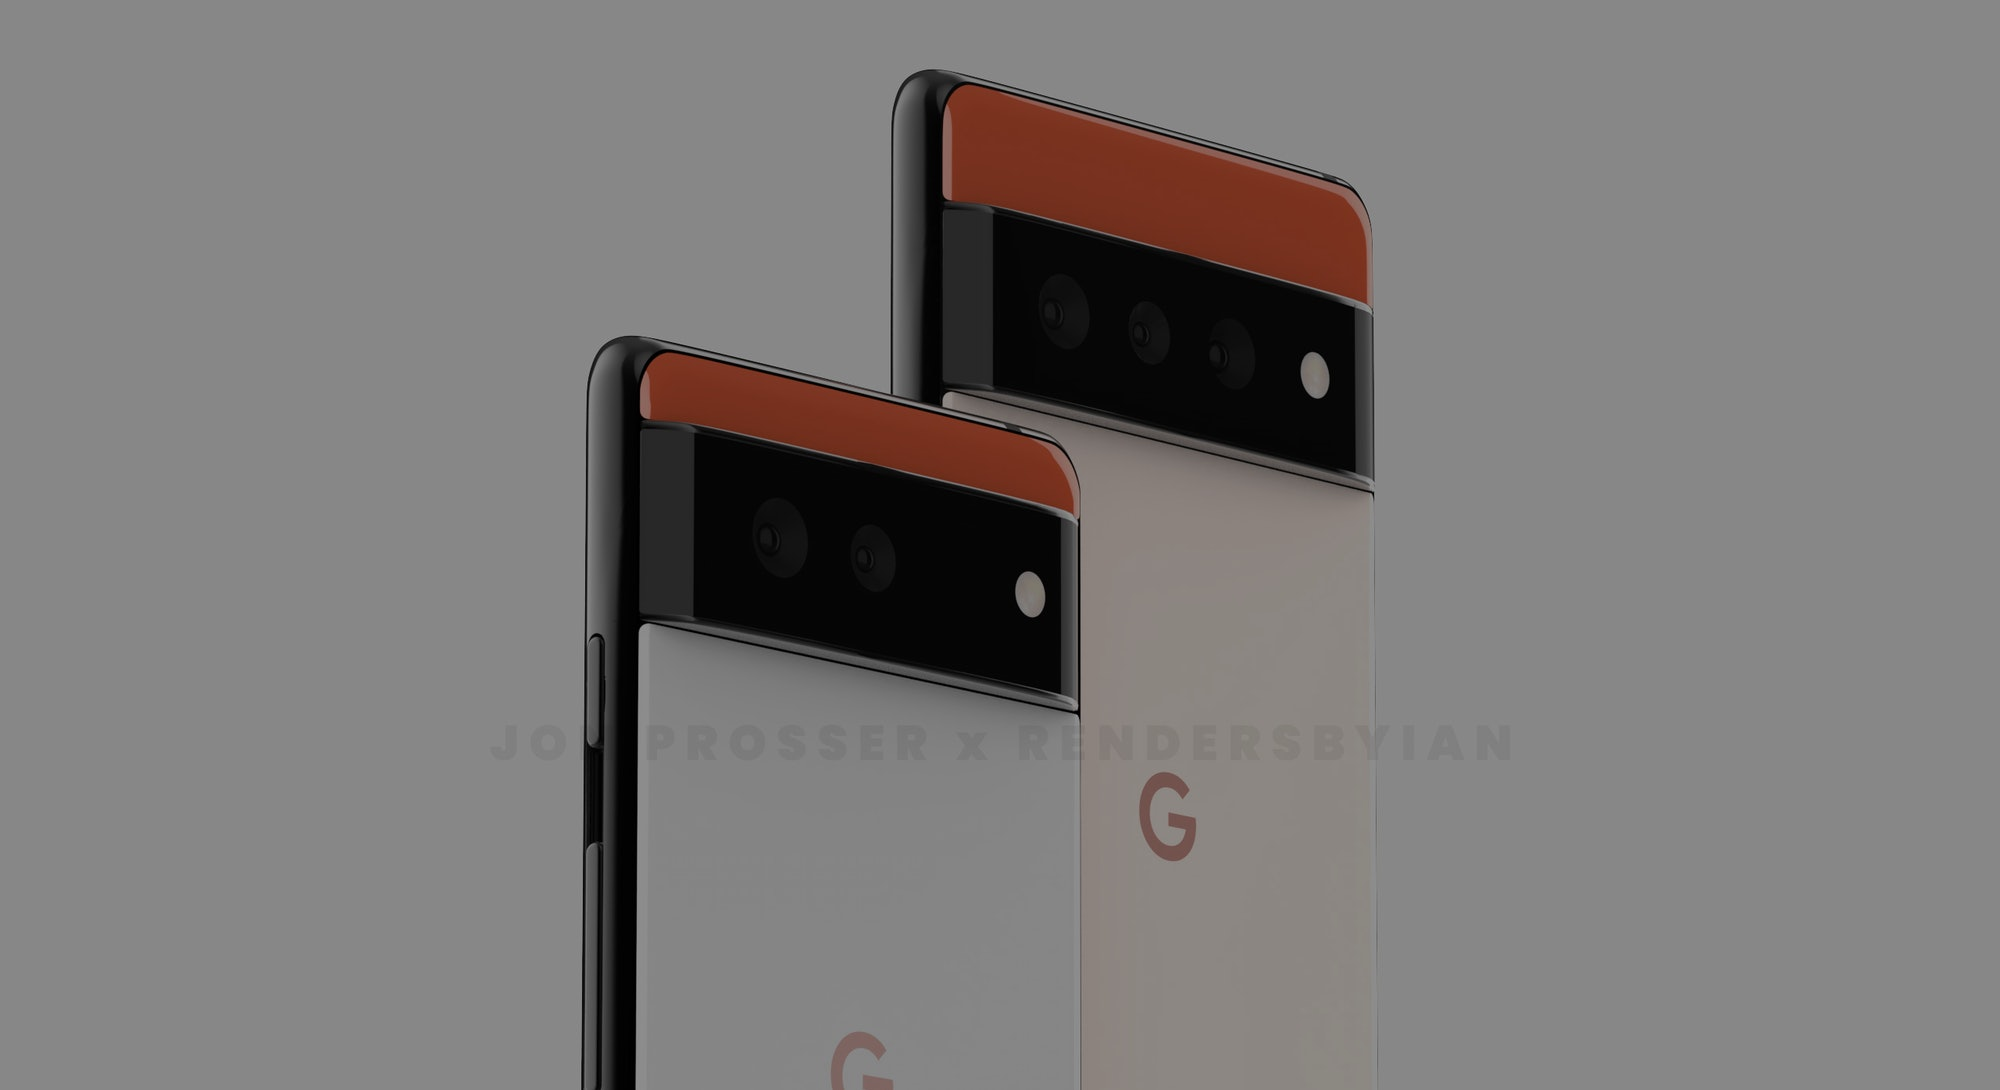 Renders made from leaks of Google's upcoming Pixel 6 phone. Mobile. Android. Smartphones. Pixel 6 Pr...